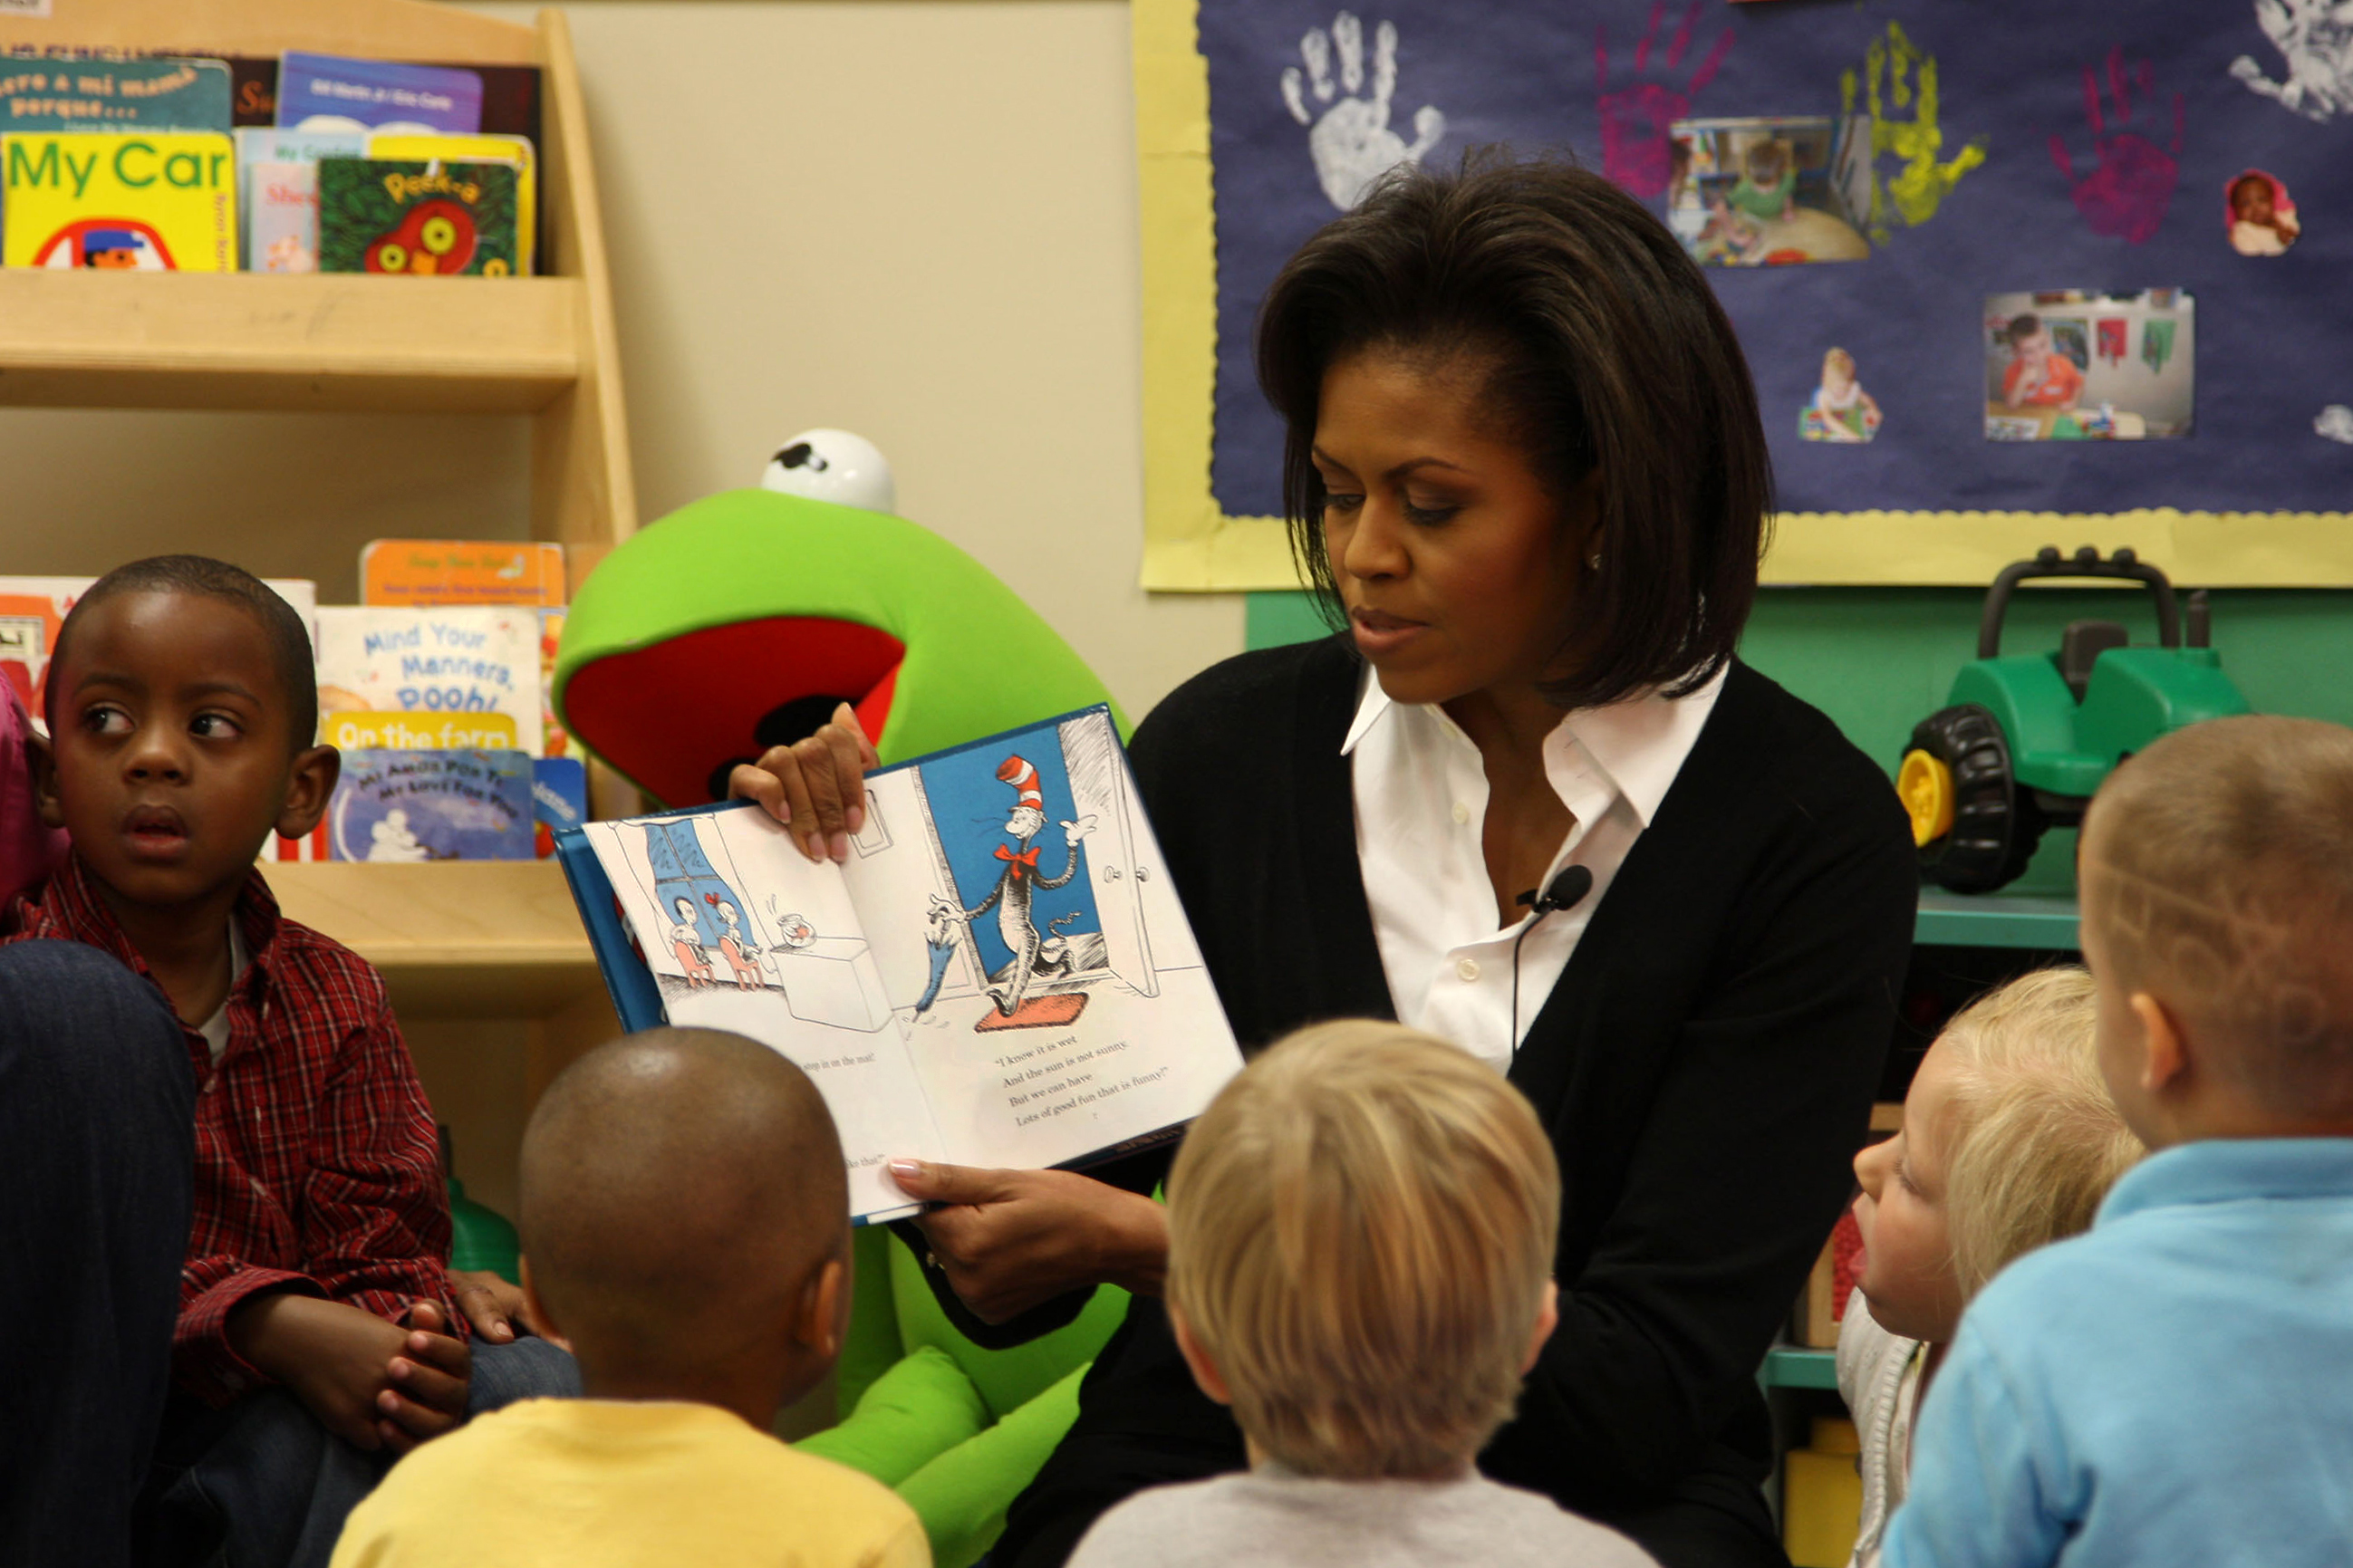 From the First Lady of the USA, to a small start-up, everyone has a story to tell. Image source: goo.gl/hd3I0Qcontent_copyCopy short URL